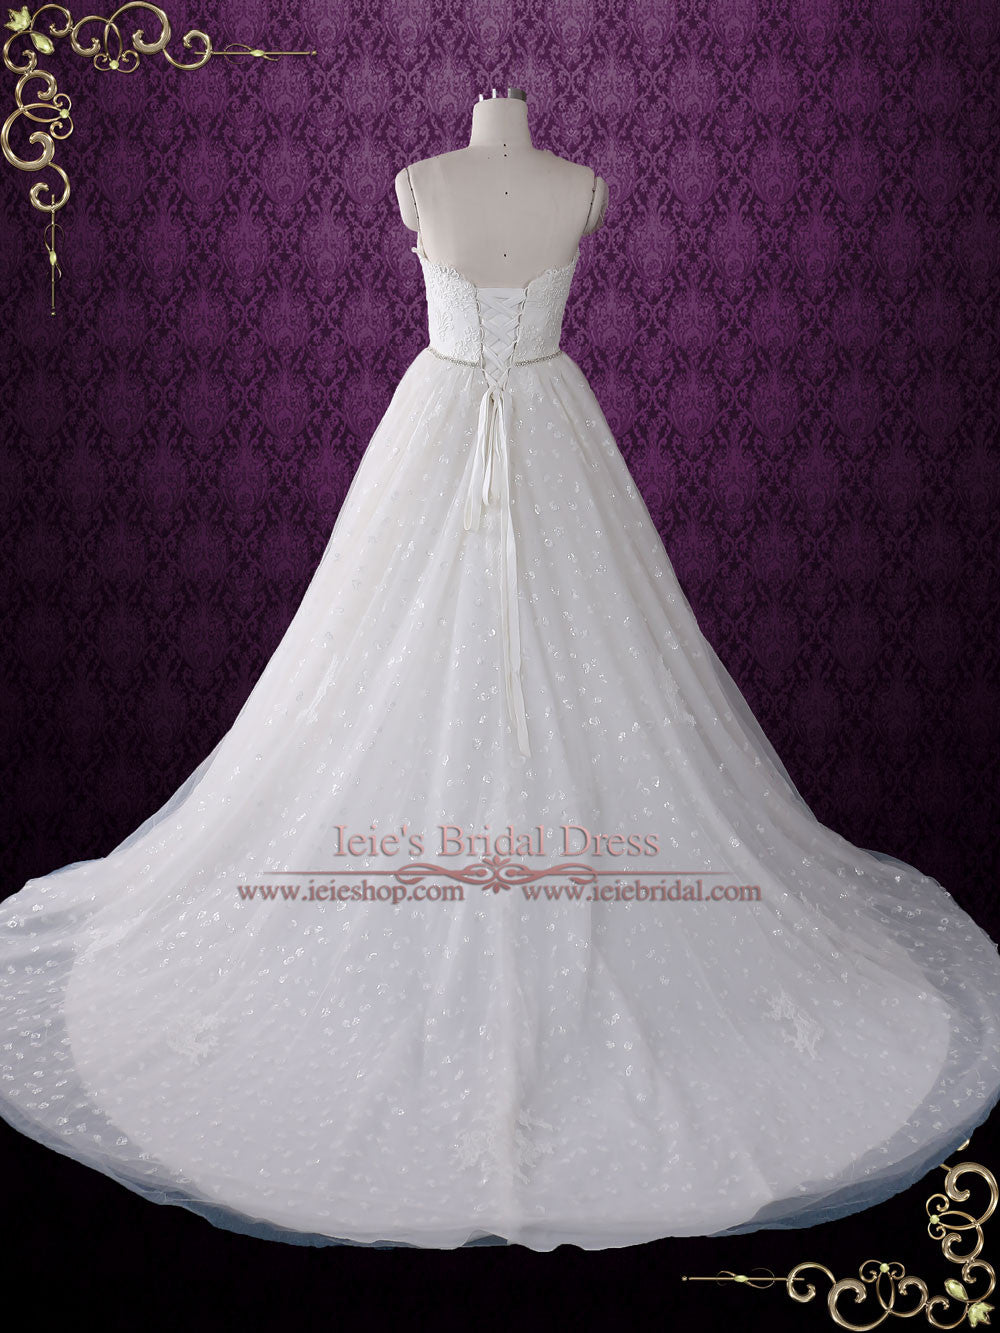 Strapless Princess Style Lace Ball Gown Wedding Dress